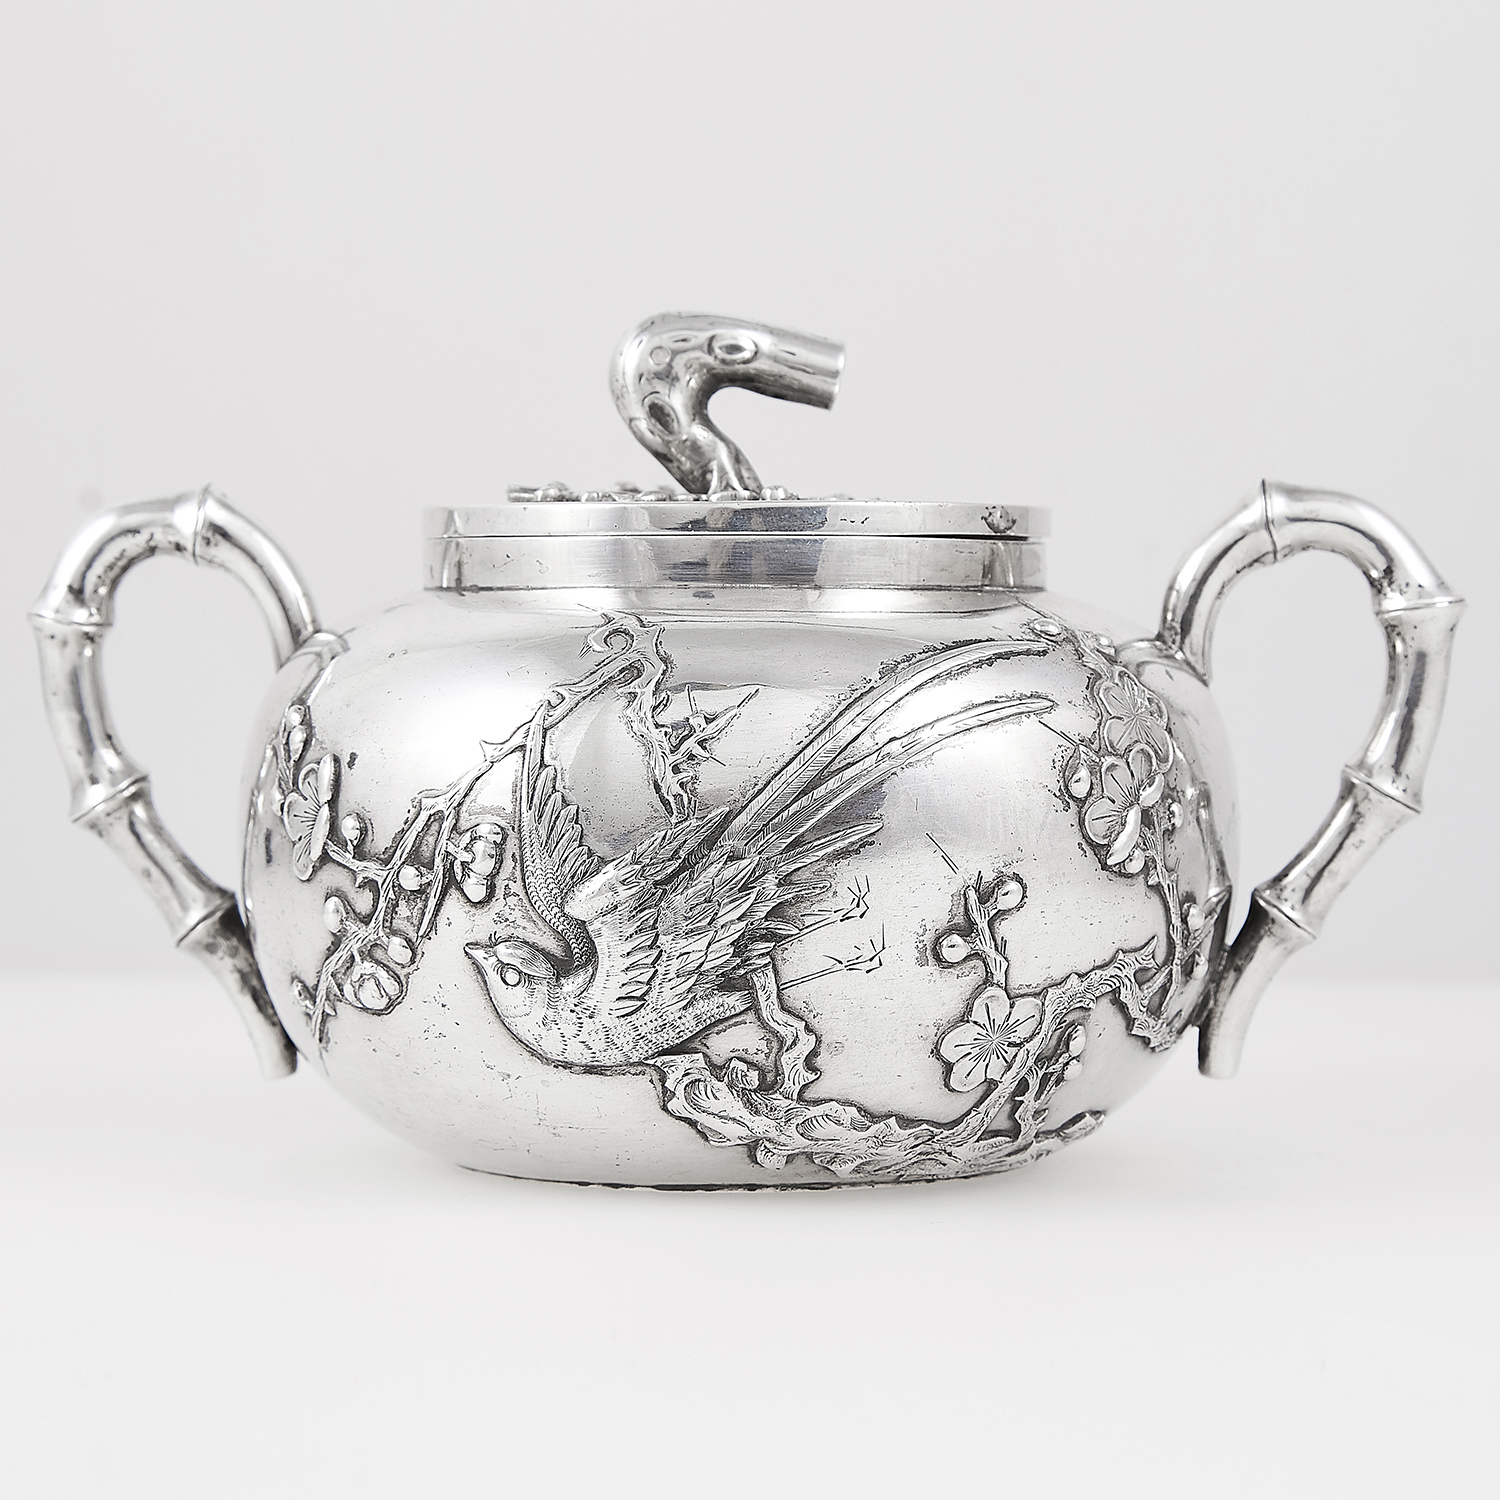 Los 12 - ANTIQUE CHINESE EXPORT SILVER TEAPOT AND SUGAR BOWL, HUNG CHONG CIRCA 1900 the rounded bodies with